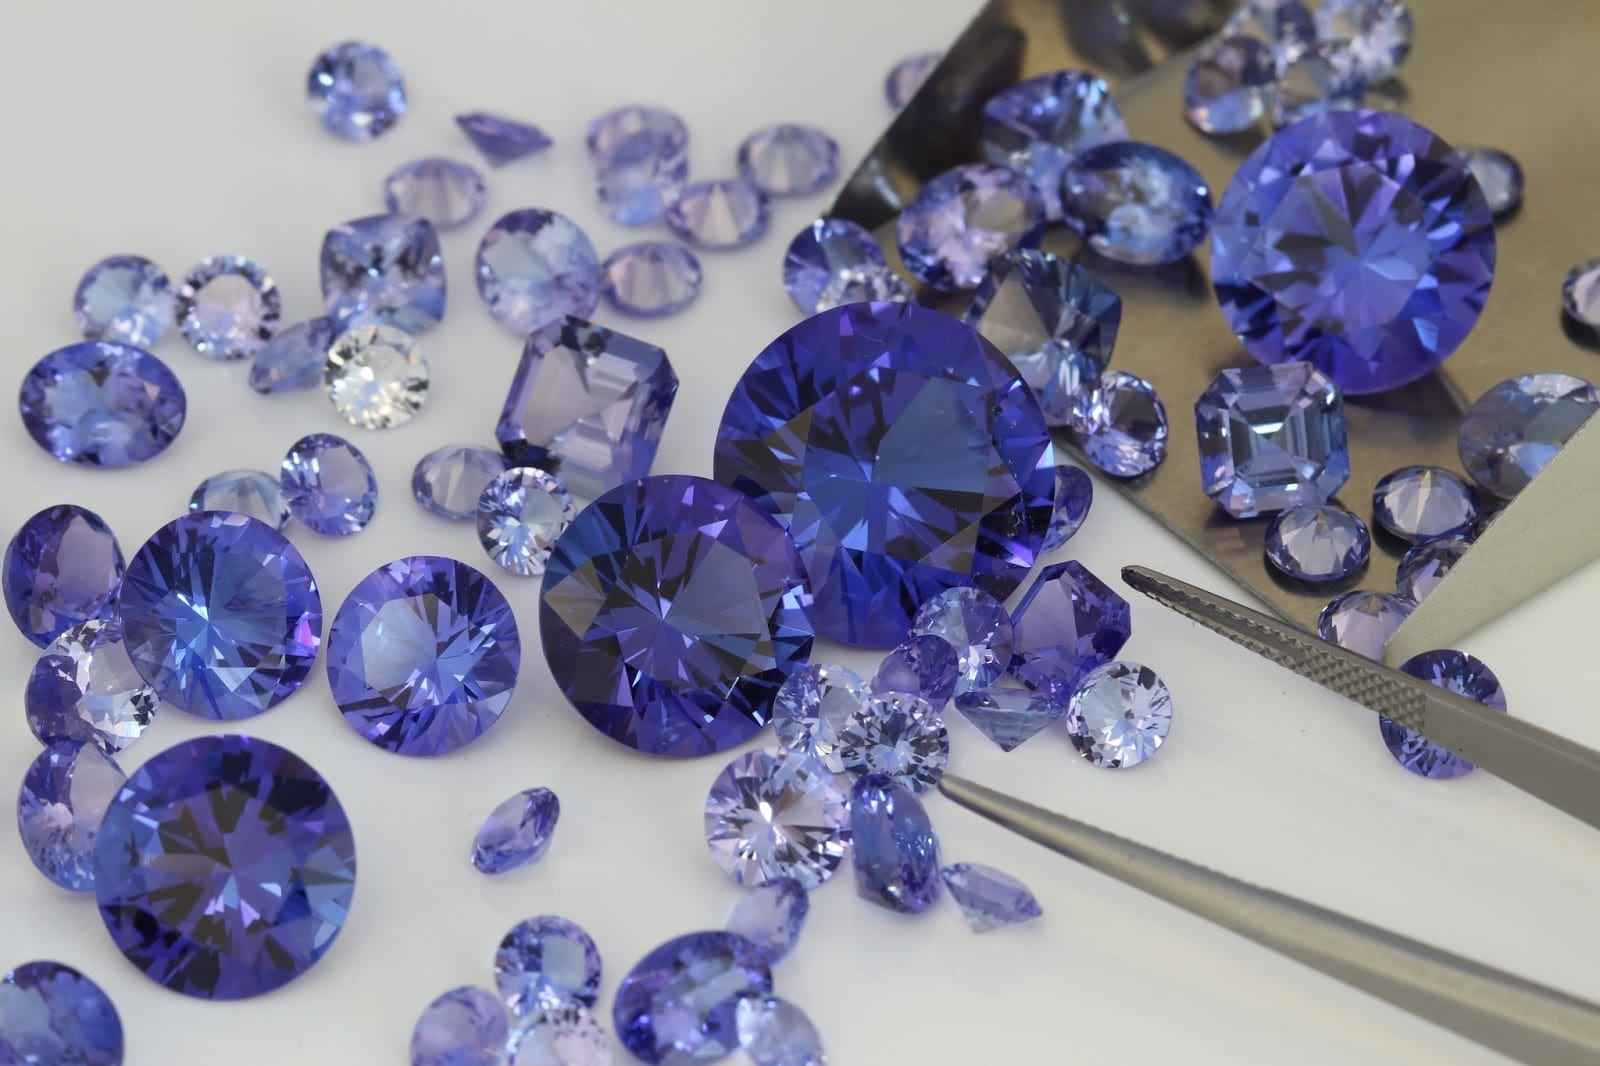 finest stones tanzanite quality loose